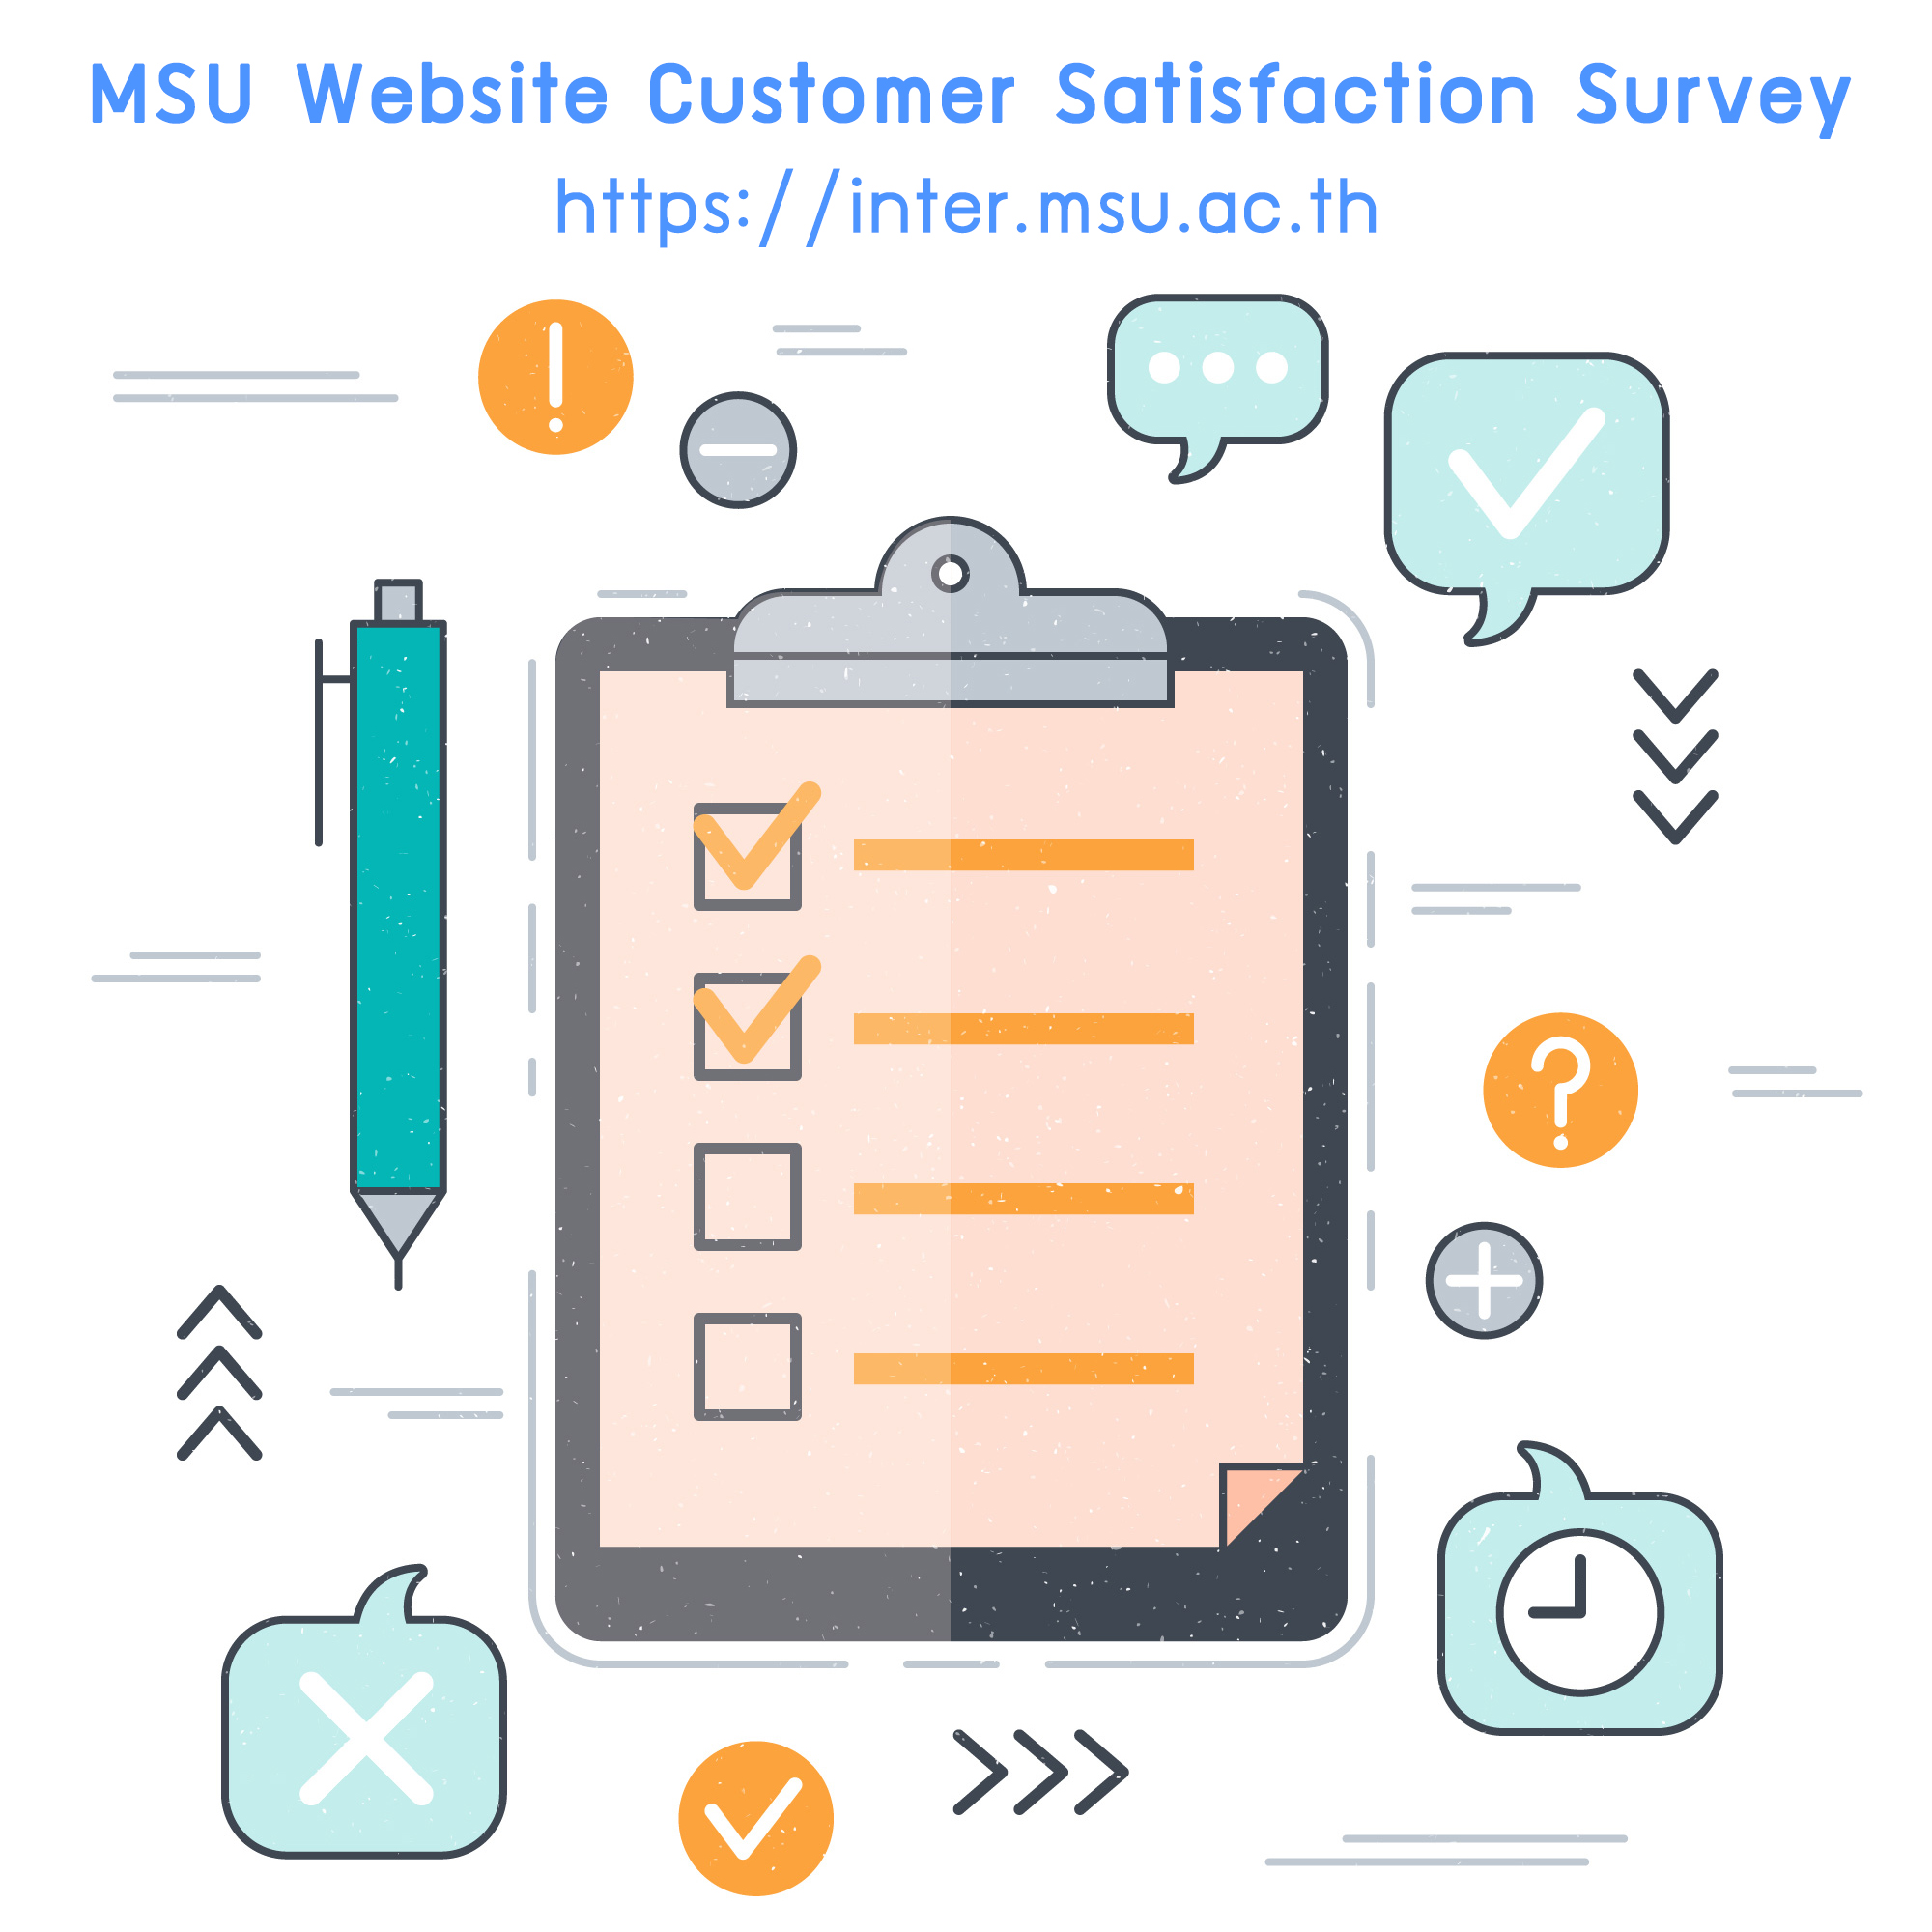 MSU Website Customer Satisfaction Survey https://inter.msu.ac.th